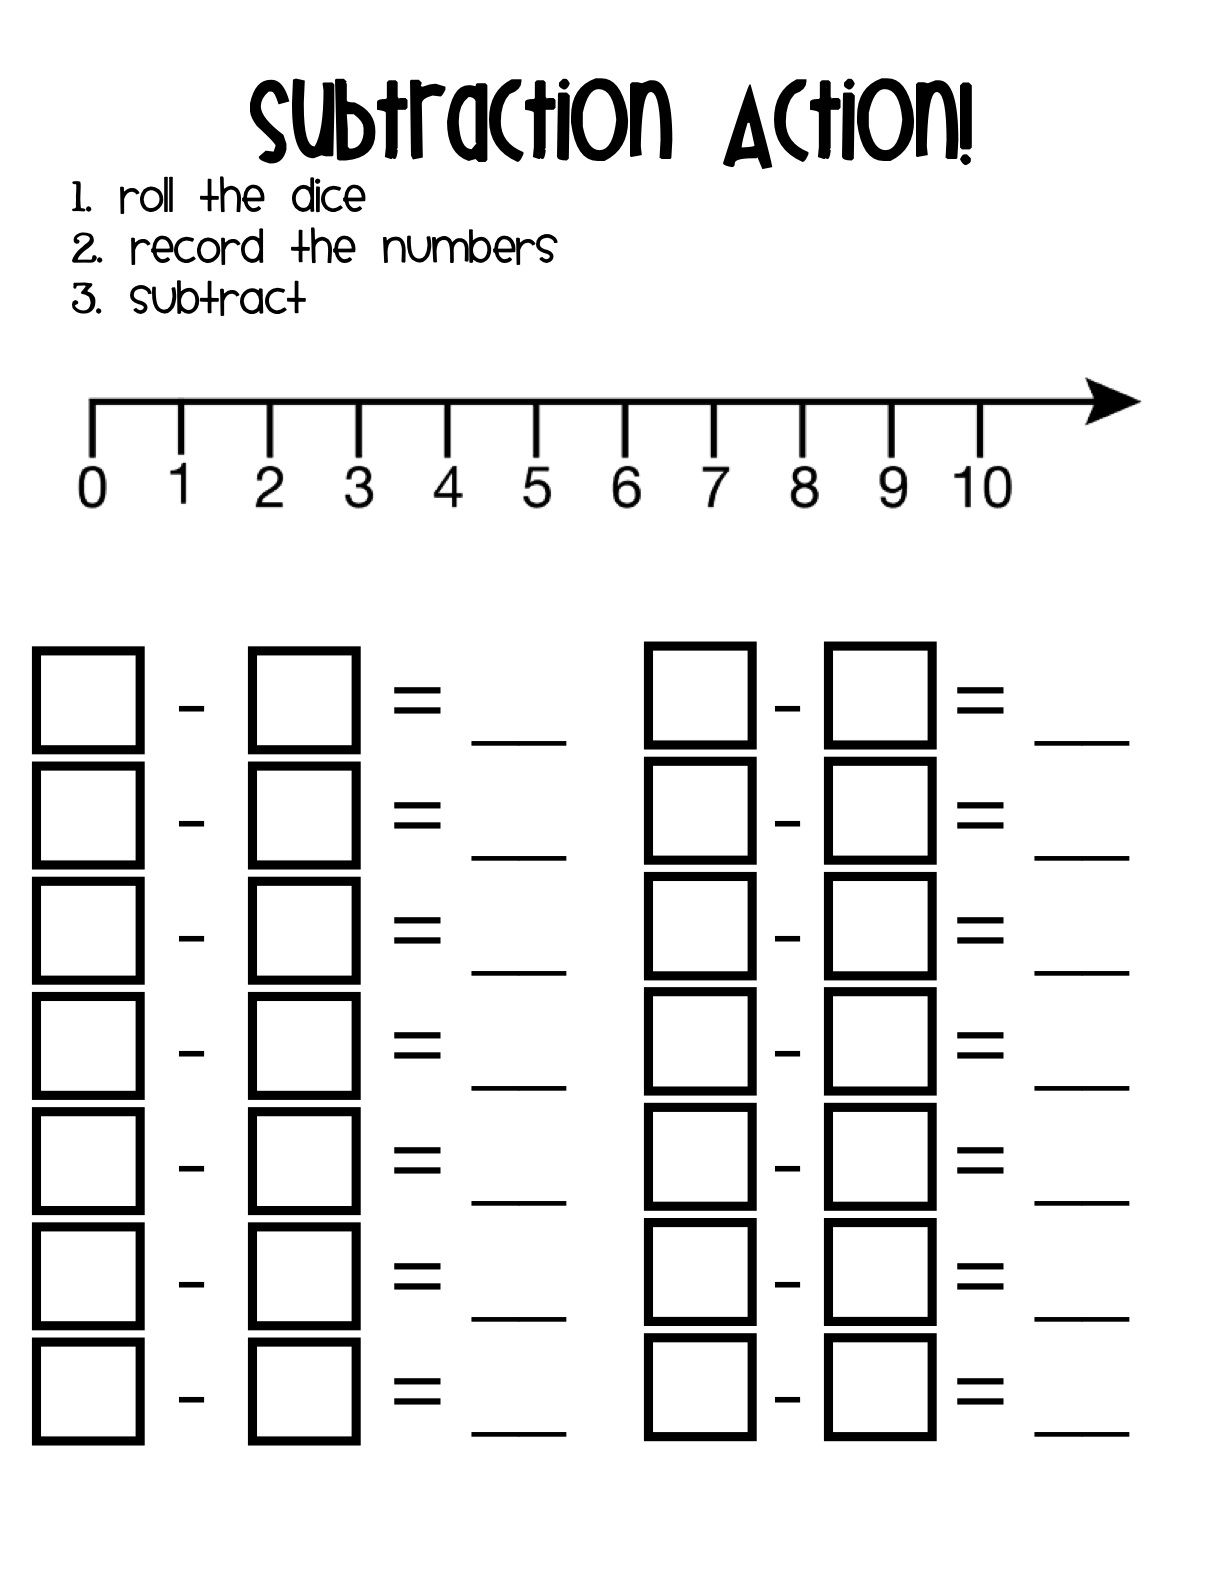 Worksheet Subtraction For Kindergarten 1000 images about subtraction kindergarten on pinterest anchor charts math and activities